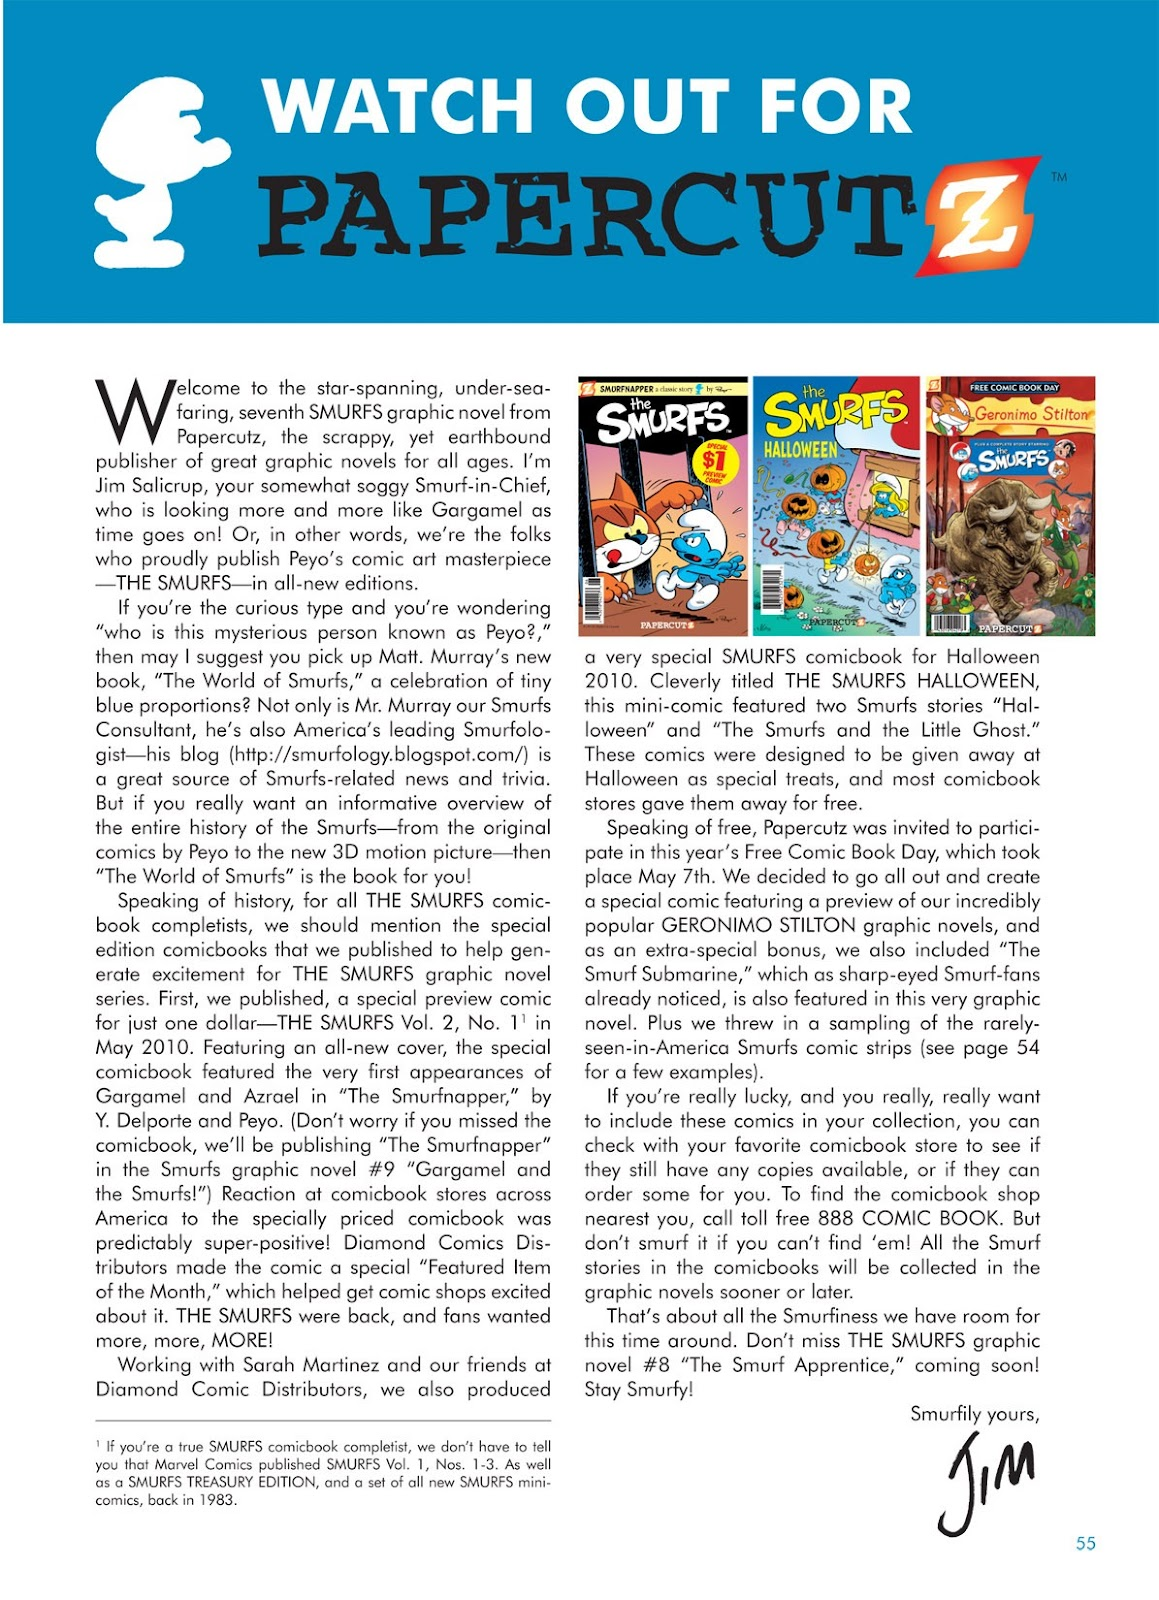 Read online The Smurfs comic -  Issue #7 - 55